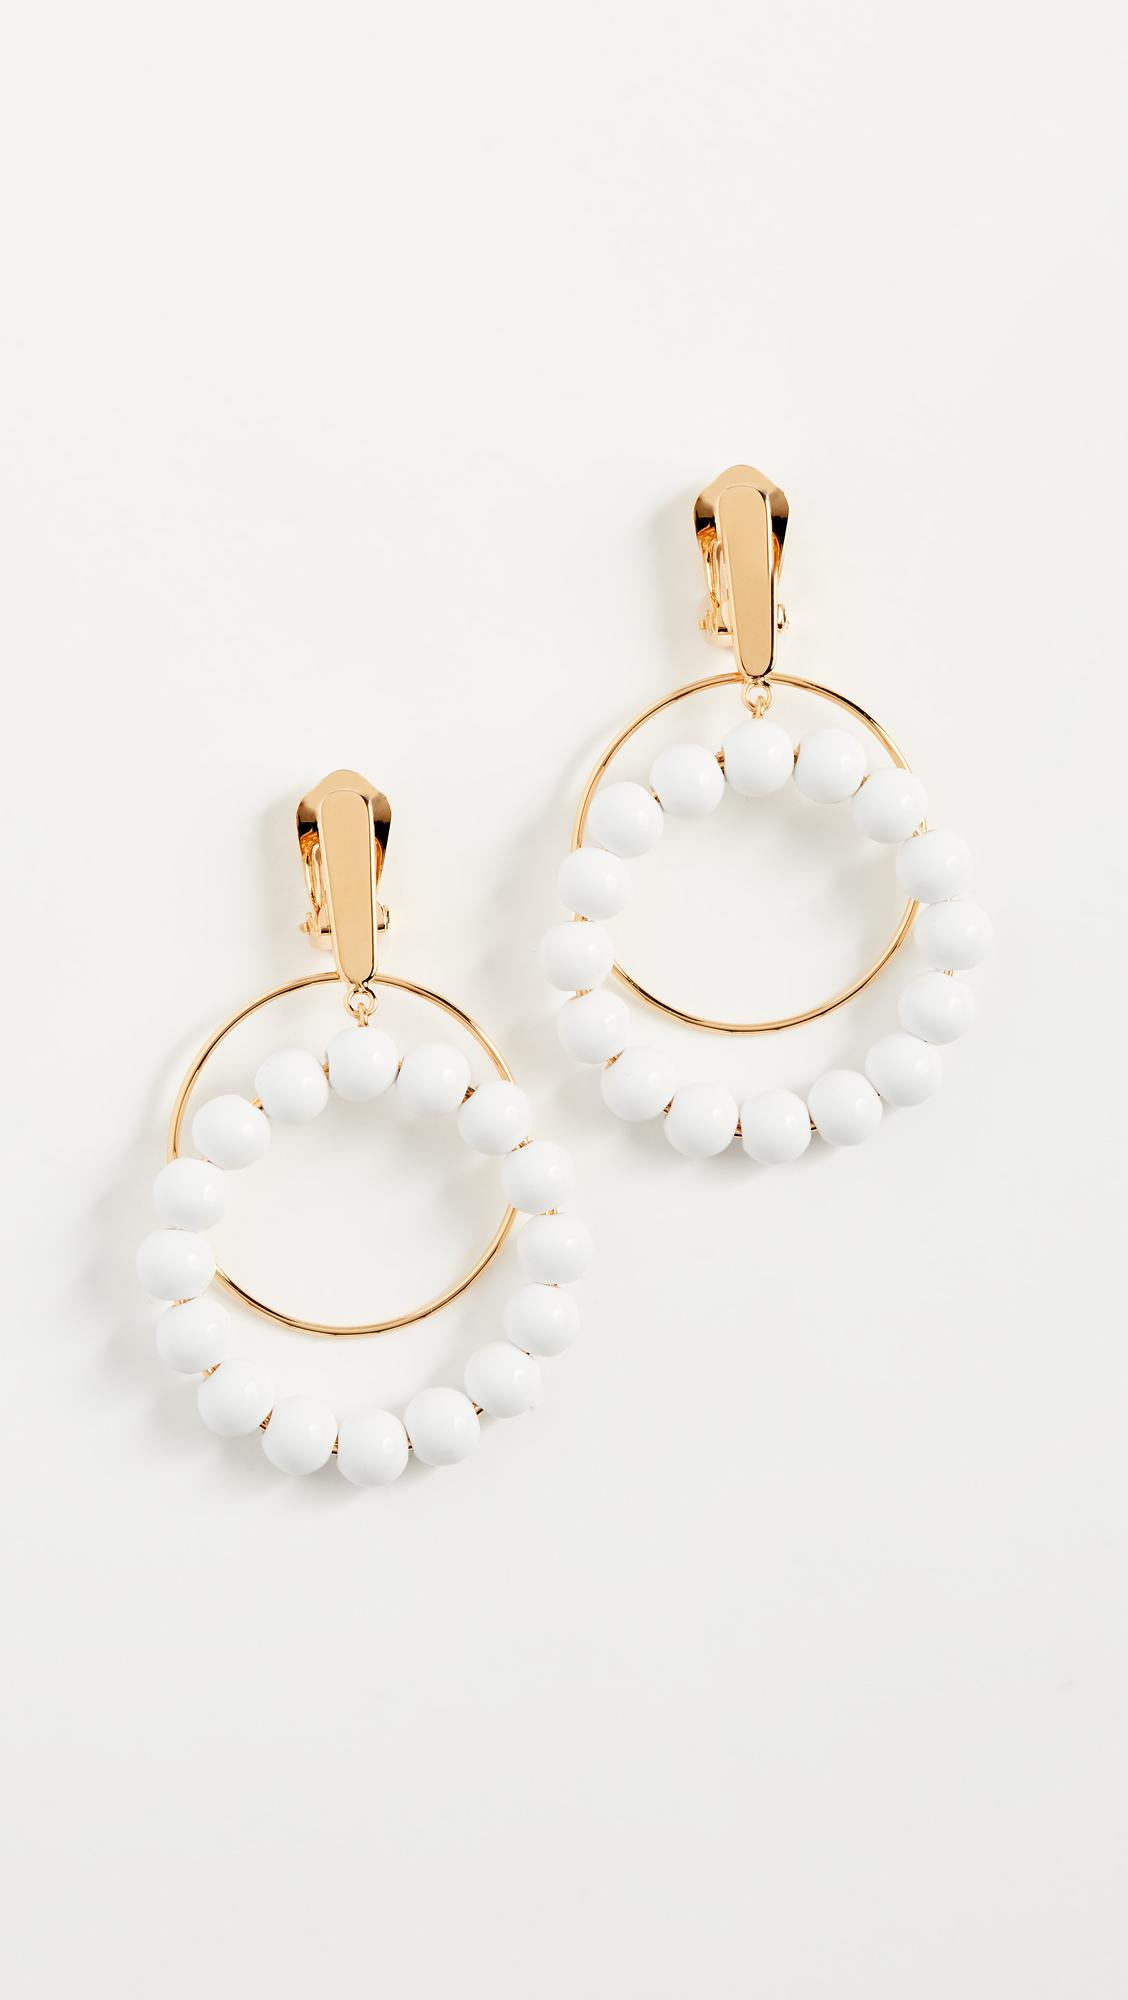 Marni Bead-embellished clip-on earrings BG68xJS